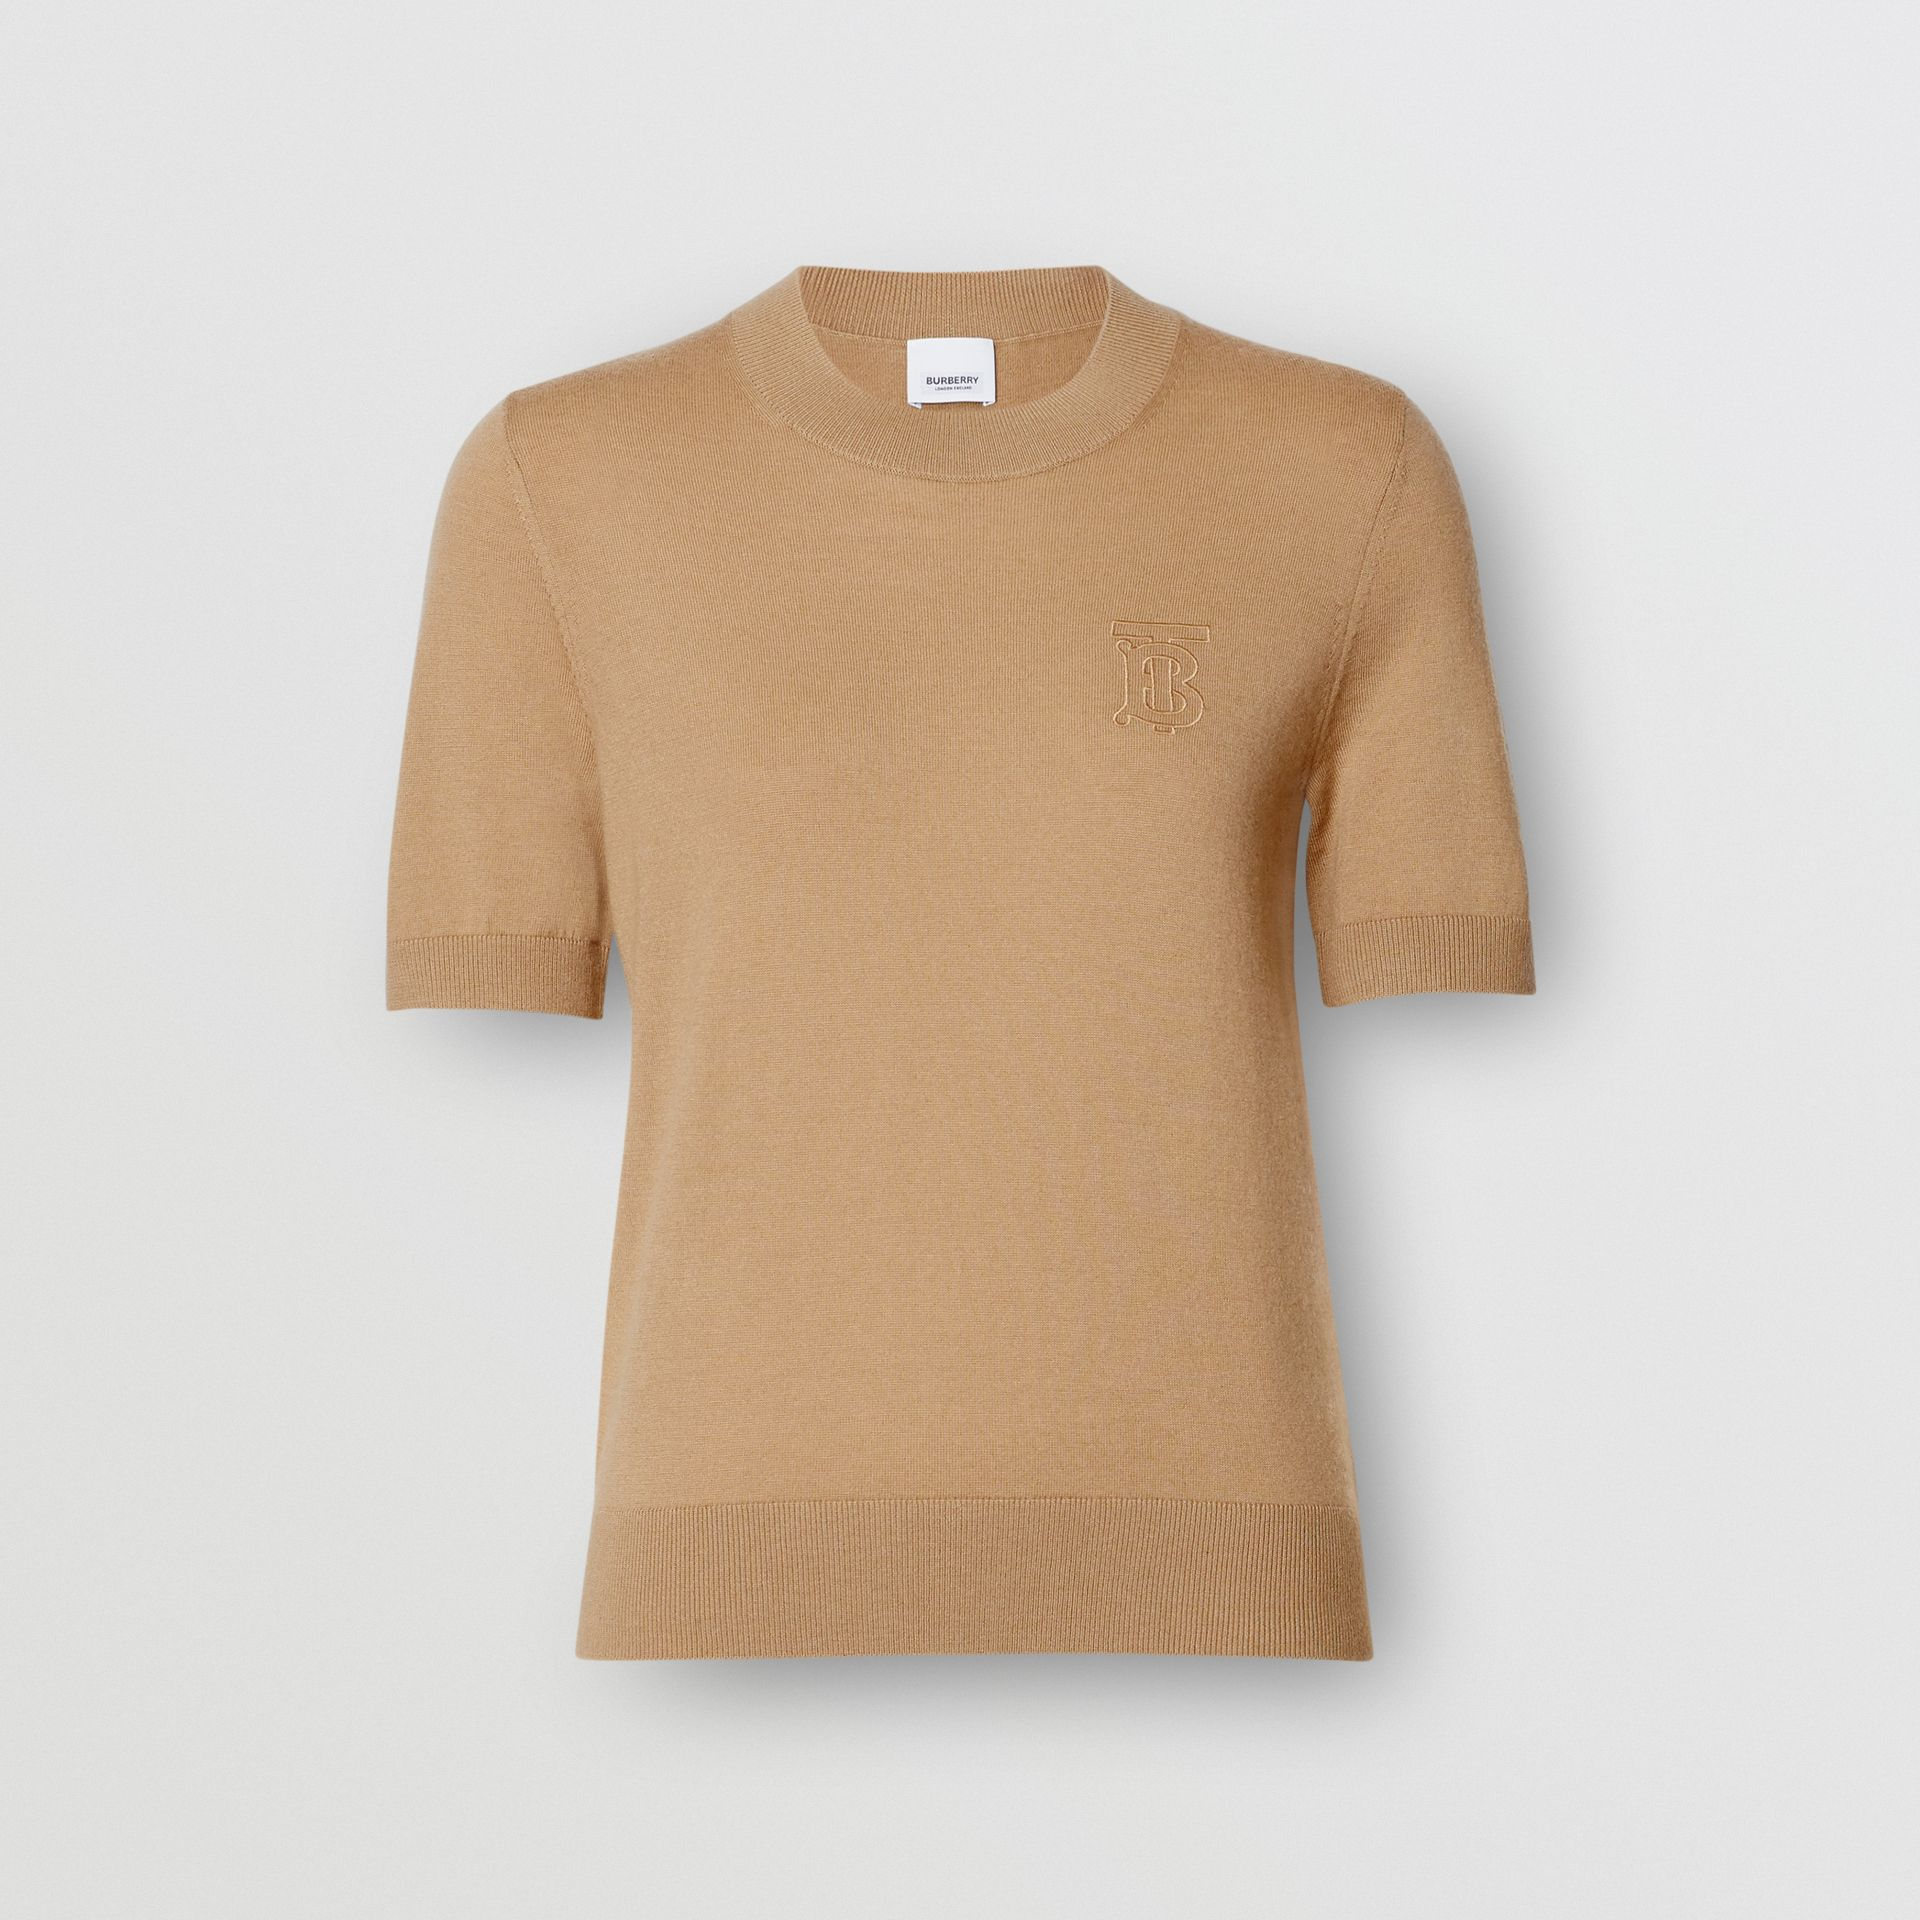 Monogram Motif Cashmere Top in Archive Beige - Women | Burberry Hong Kong S.A.R - gallery image 3